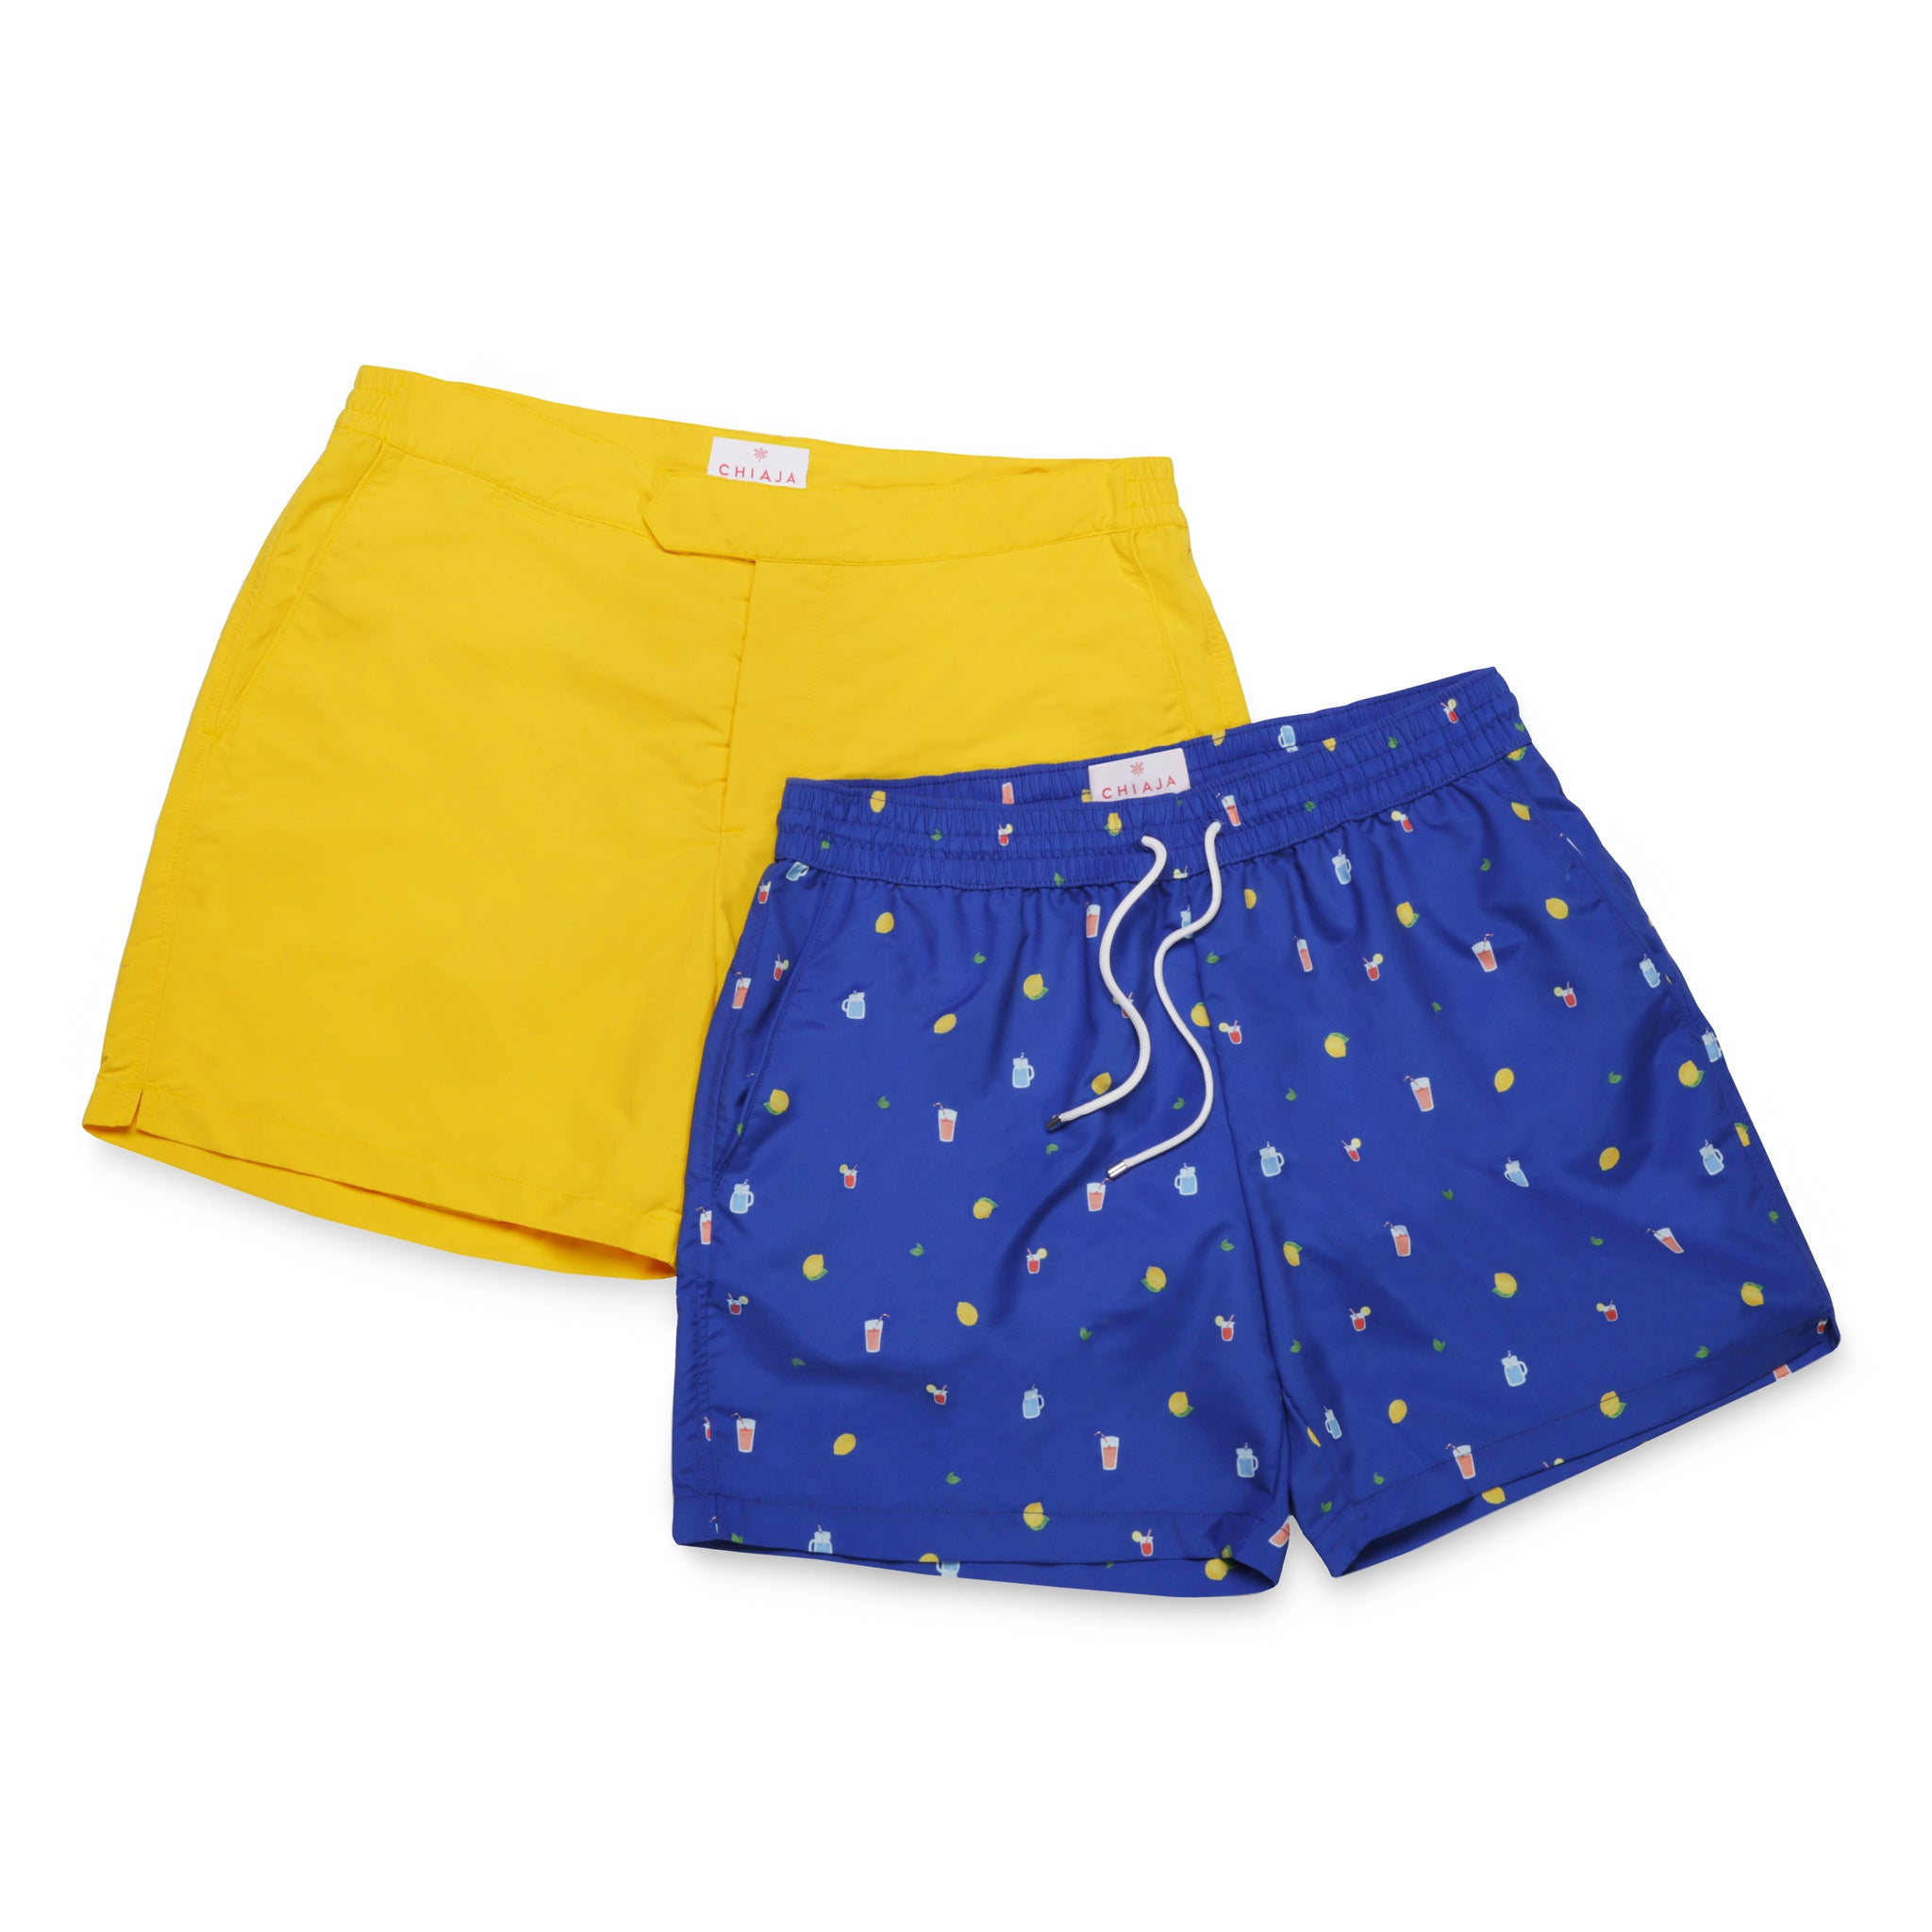 Chiaja Swim Shorts Collection - Handmade in Italy